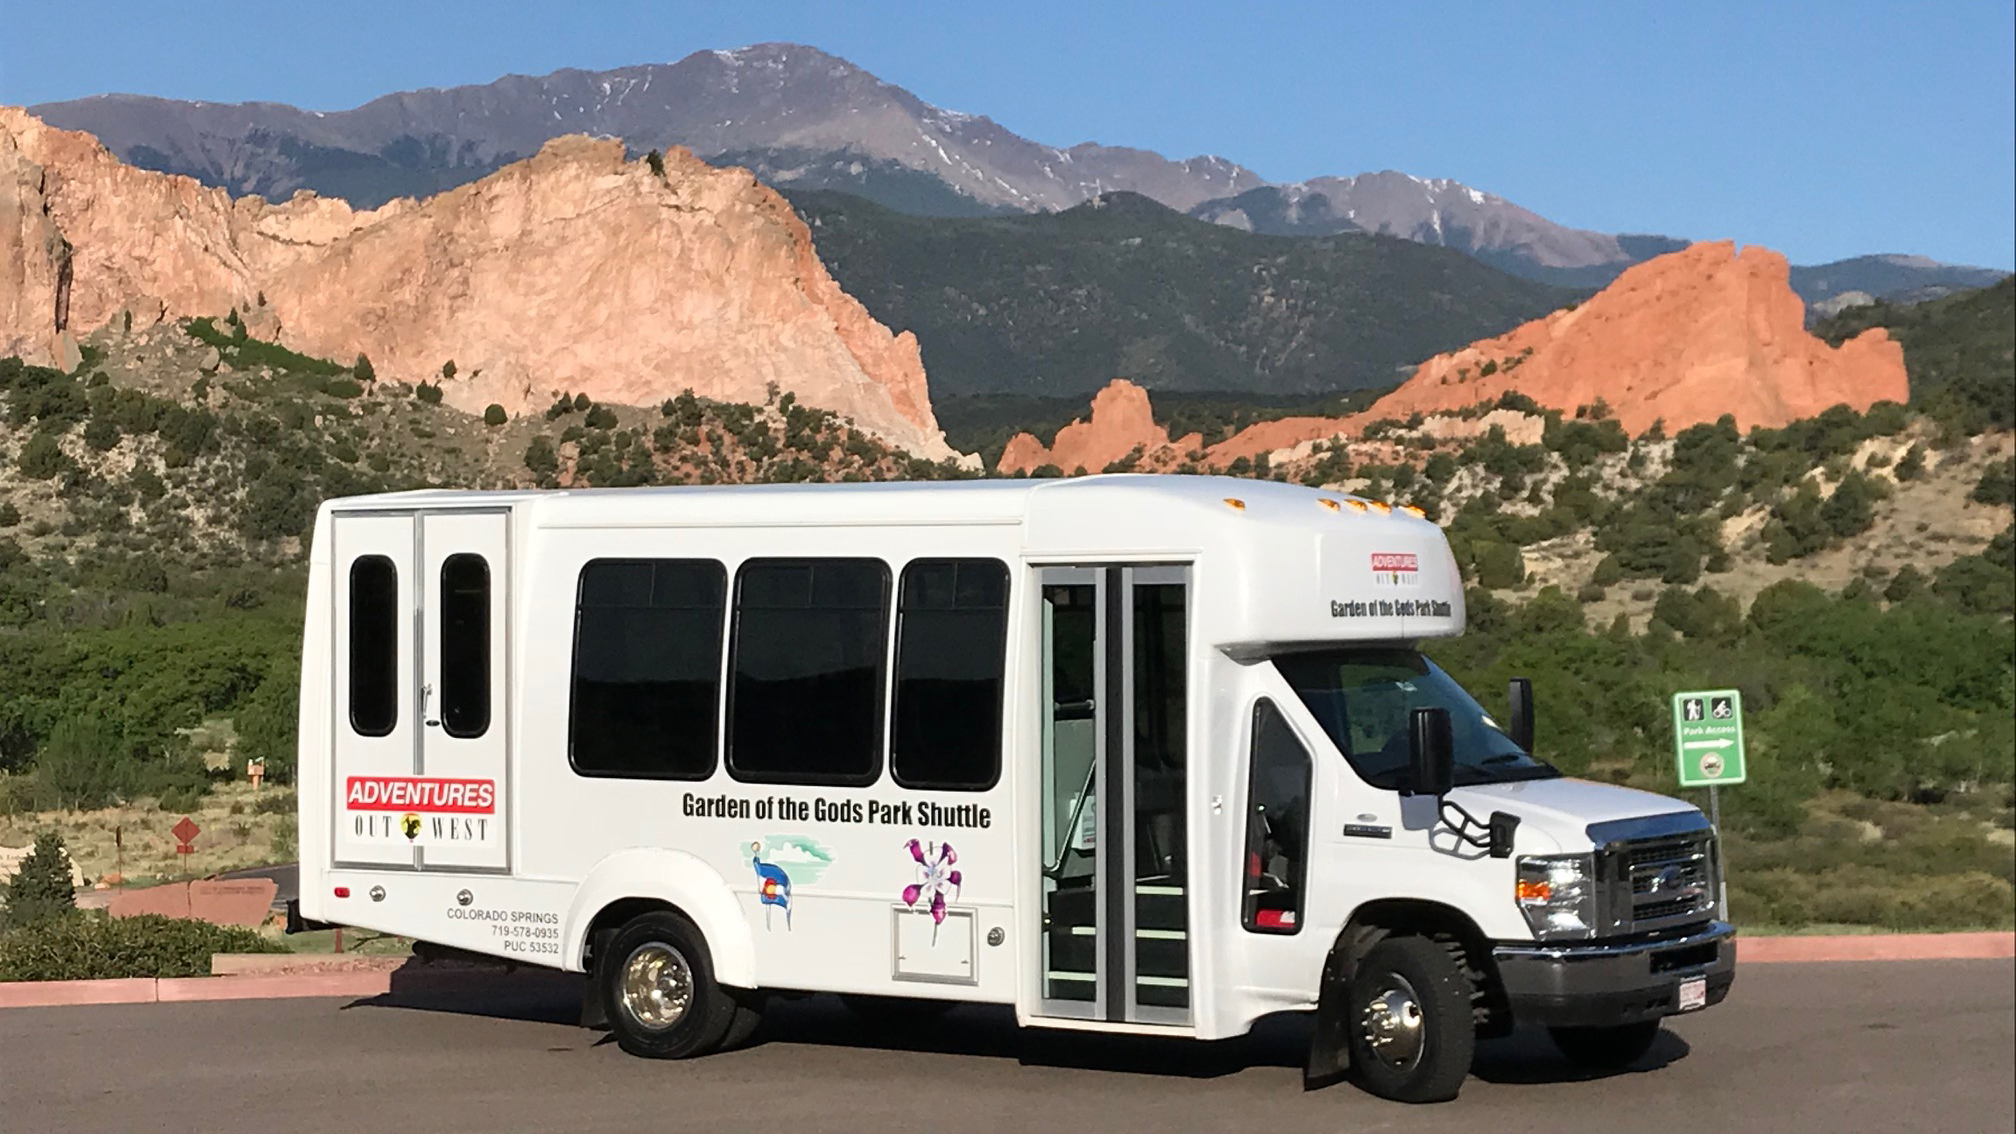 The city of Colorado Springs is once again offering a free shuttle at Garden of the Gods Park. Photo courtesy City of Colorado Springs